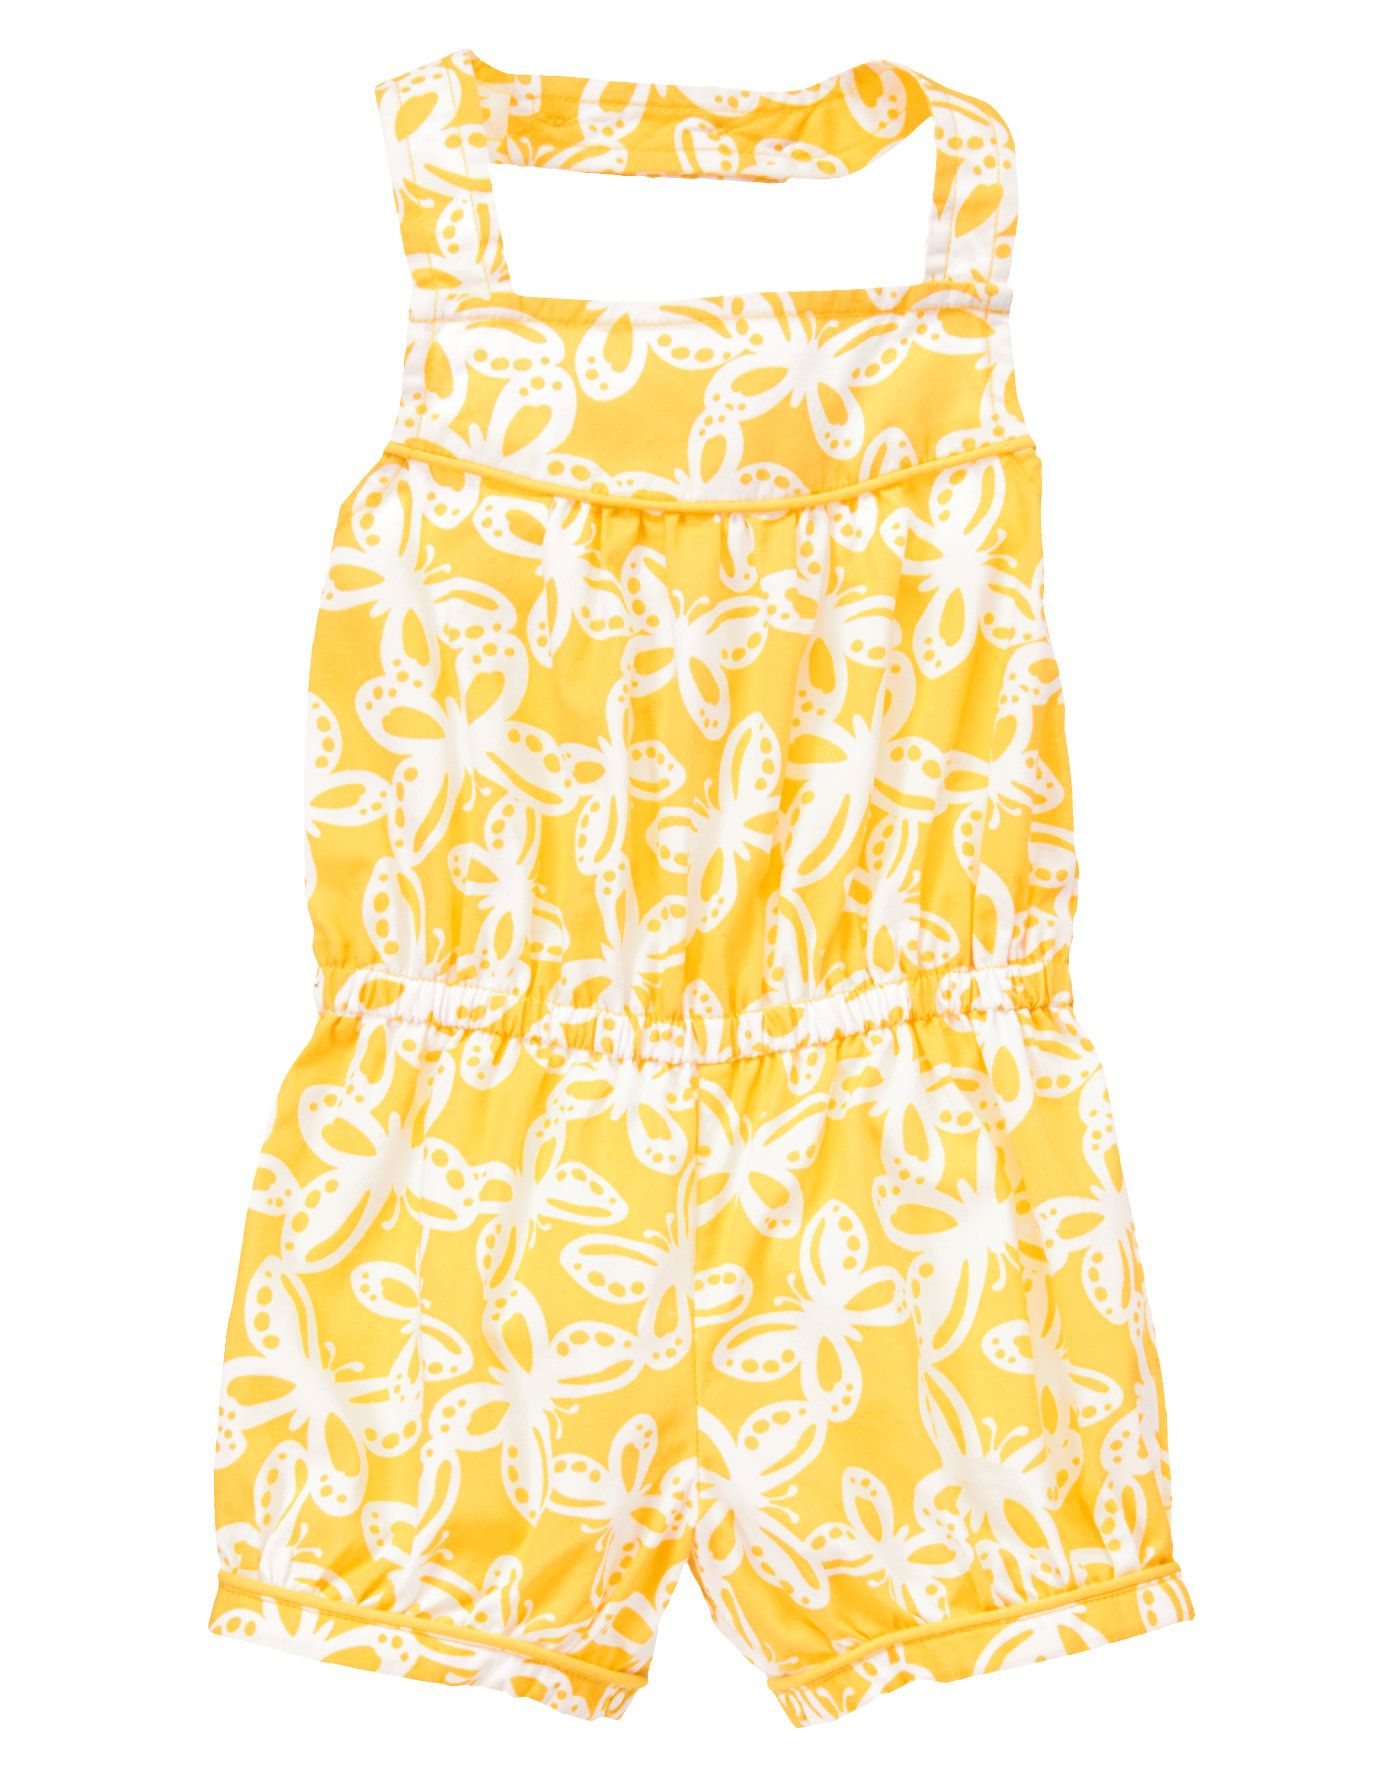 cbed3a18288 Butterfly Romper at Gymboree